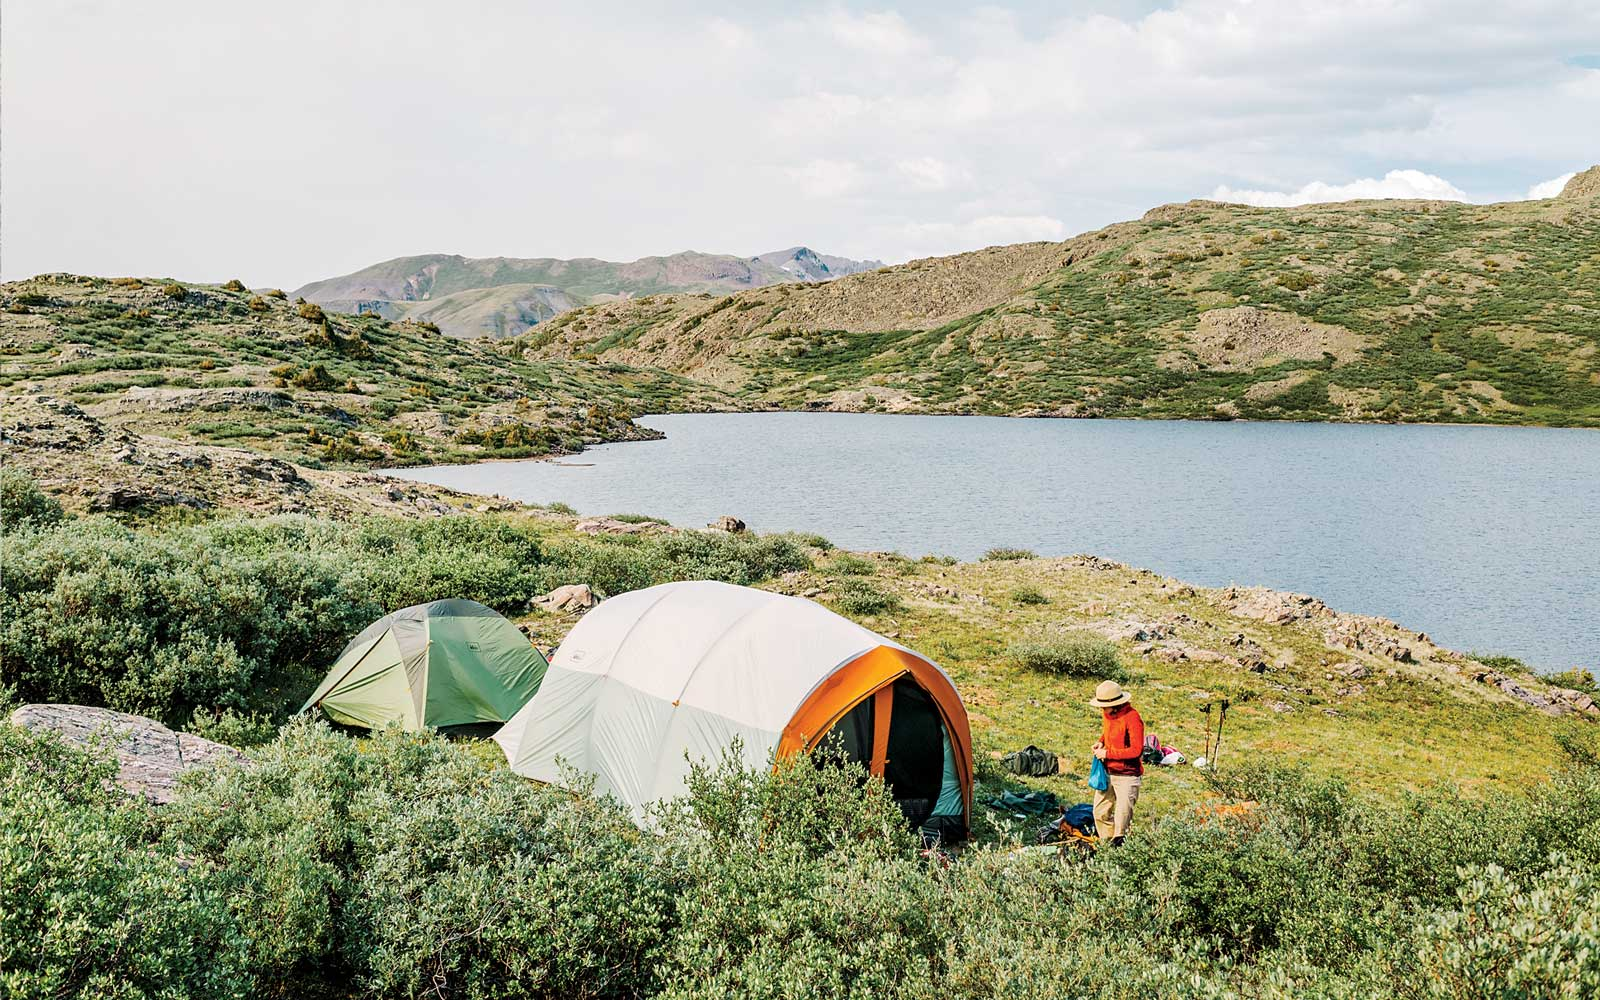 Christa Gieszl sets up camp after a hike to Verde Lakes (part of the Highlands Mary Lakes) outside Silverton